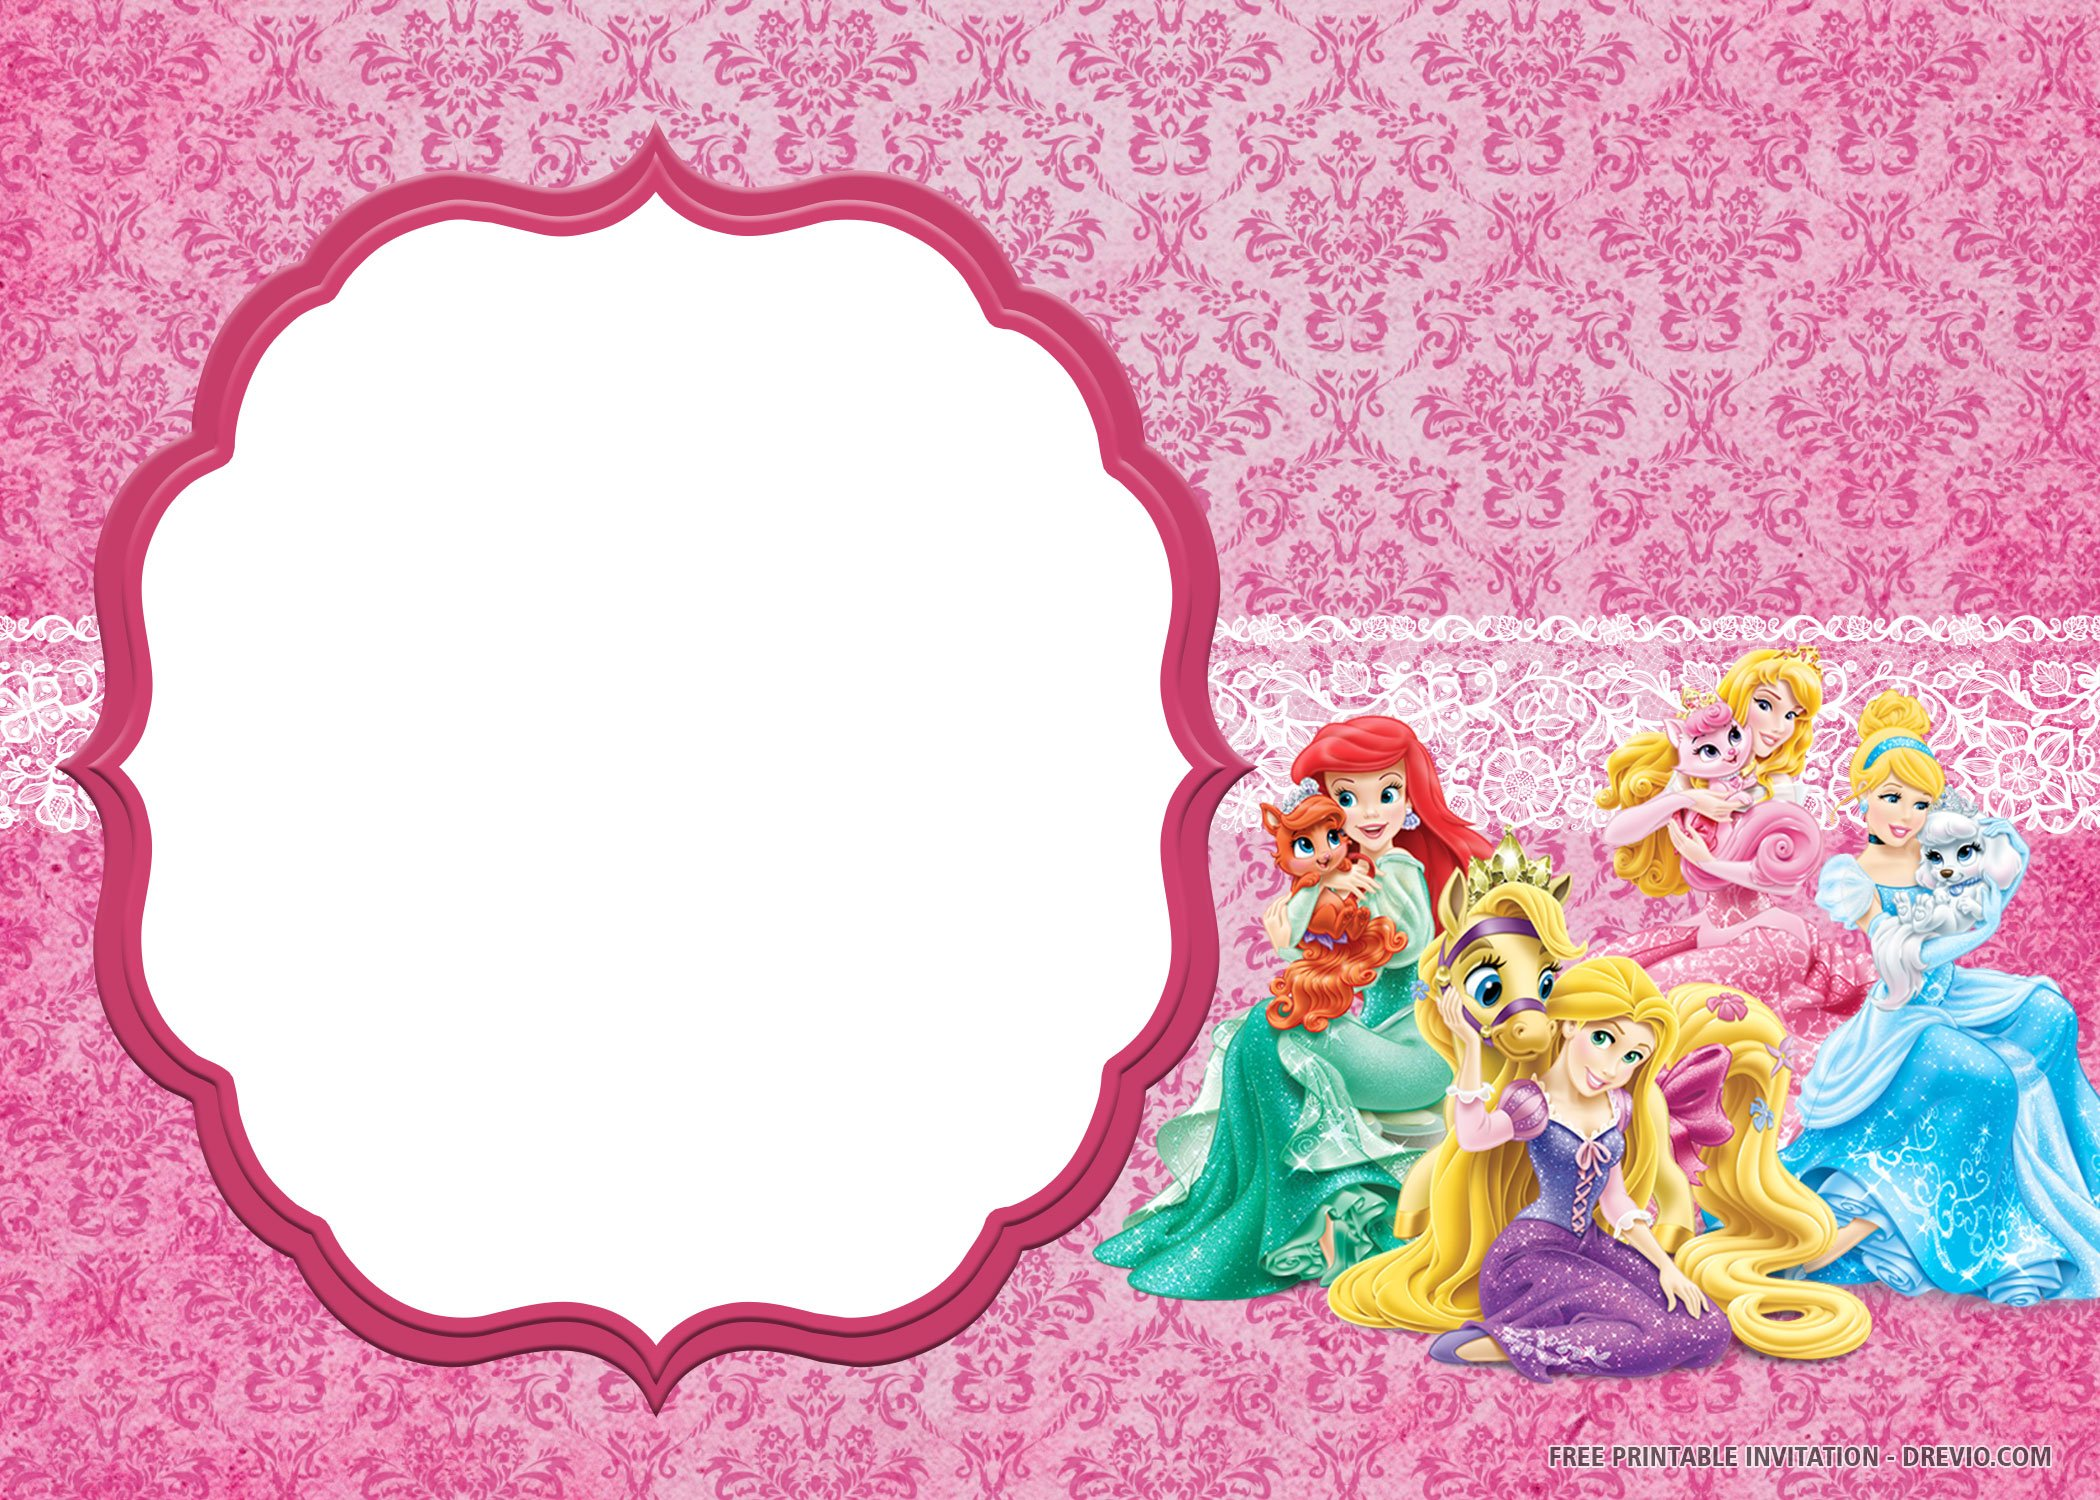 Free Printable Disney Princess Invitation Templates